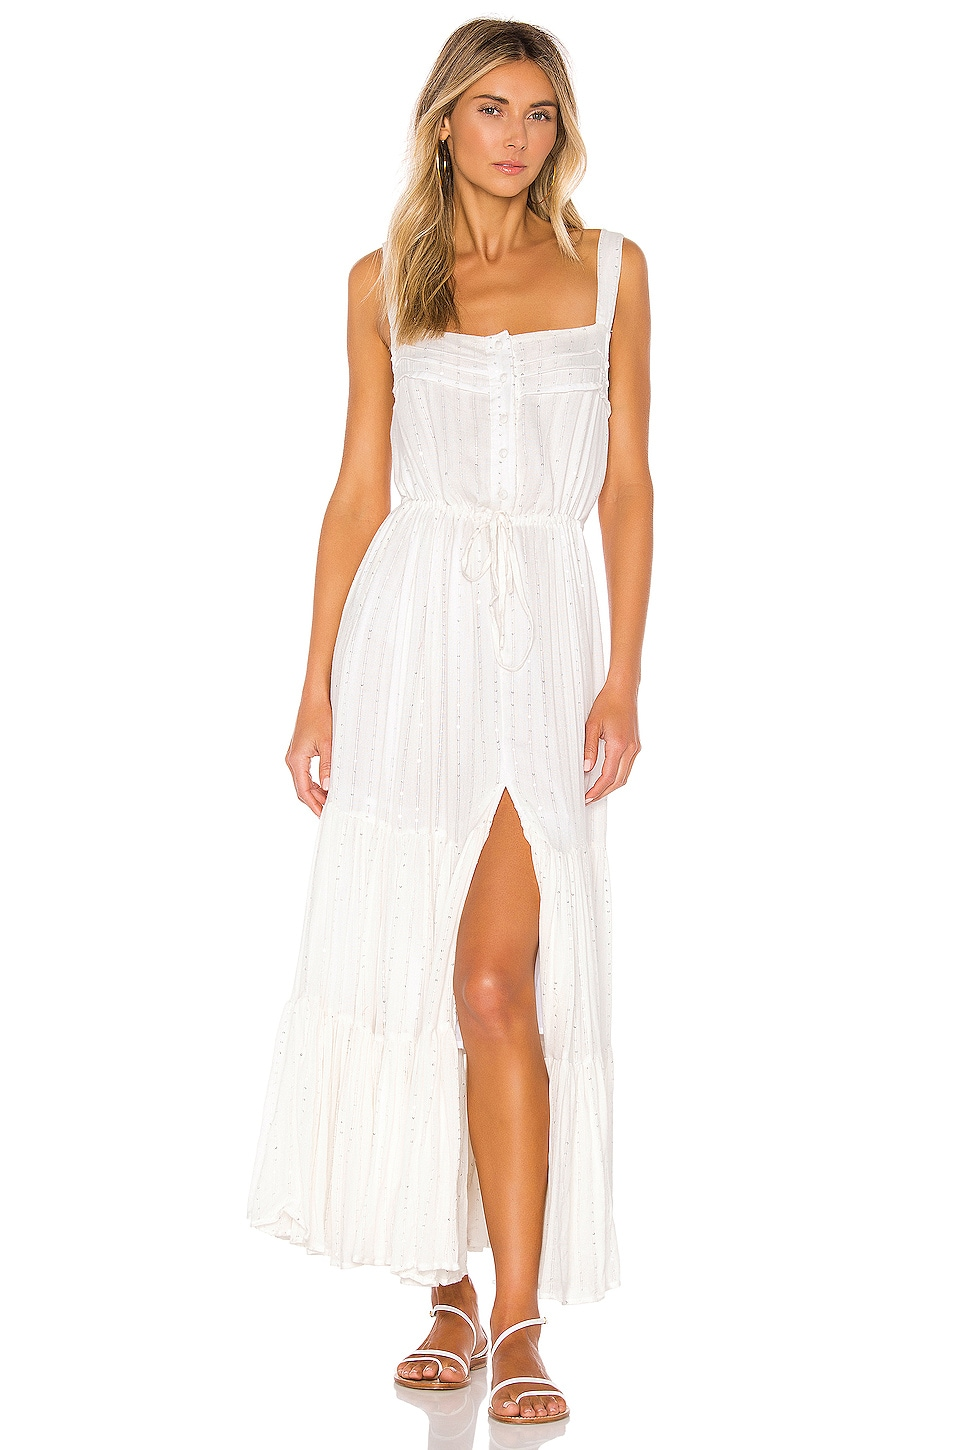 Sundress Lucia Dress in Precieuse White